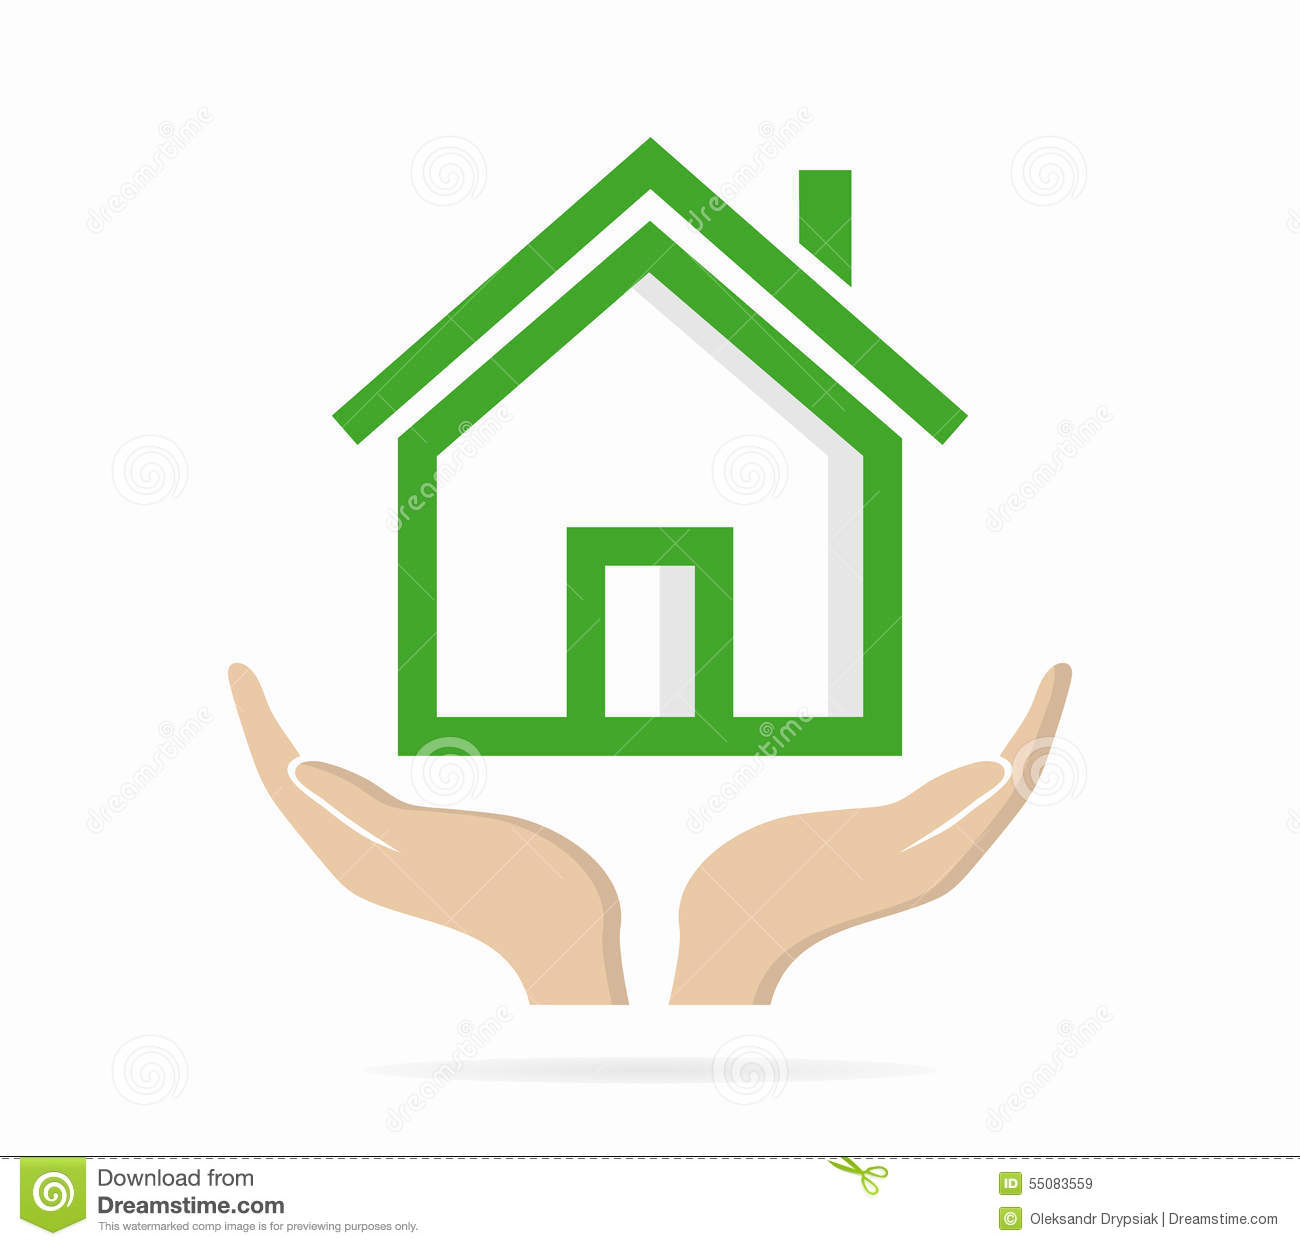 House in hand logo or icon